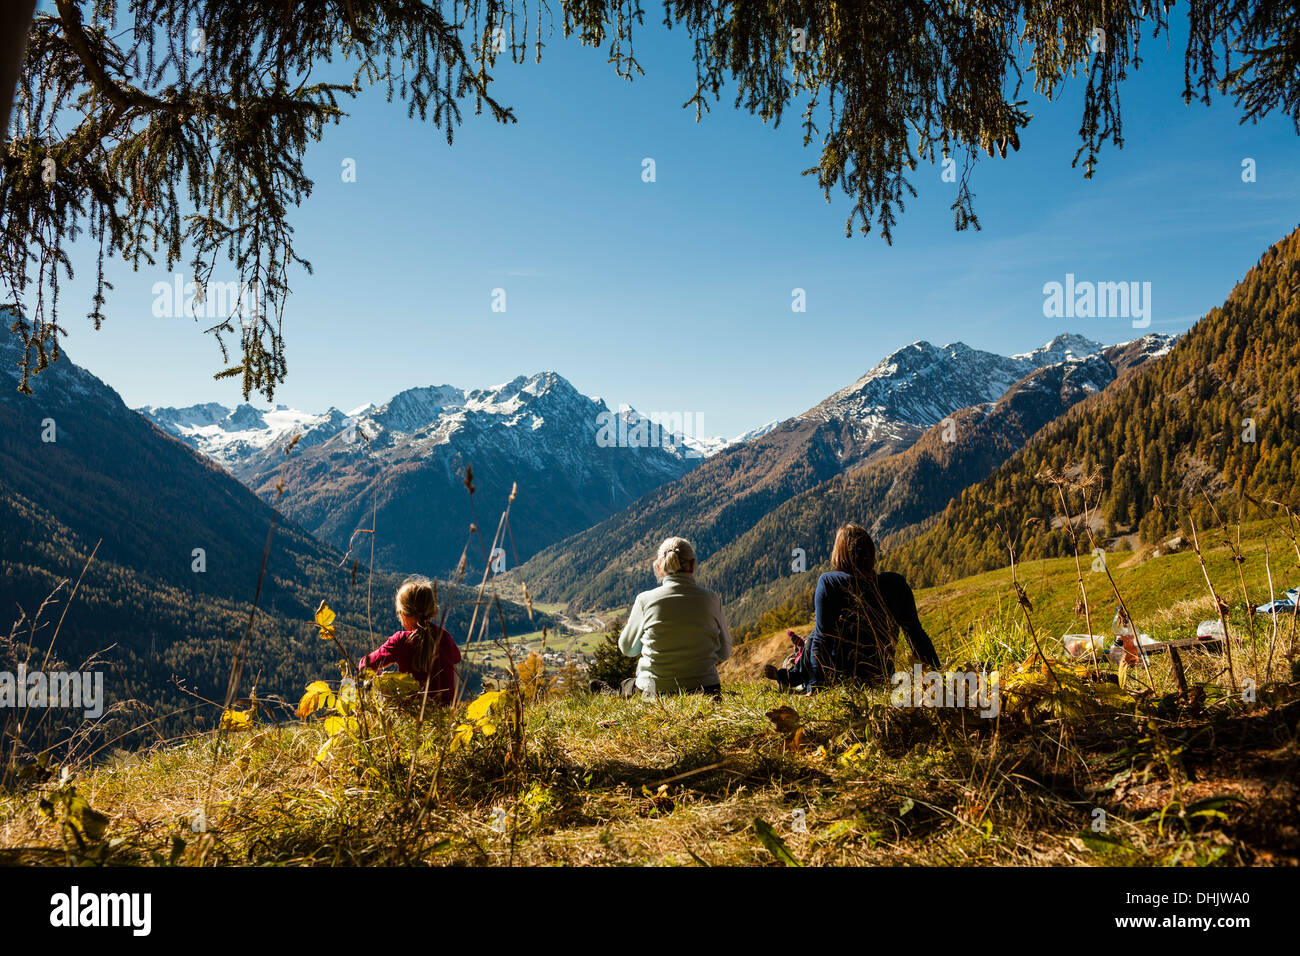 A family, two girls, a younger and an older woman sit on a meadow, autumn at Guarda, Engadin, Graubuenden, Grisons, Switzerland - Stock Image